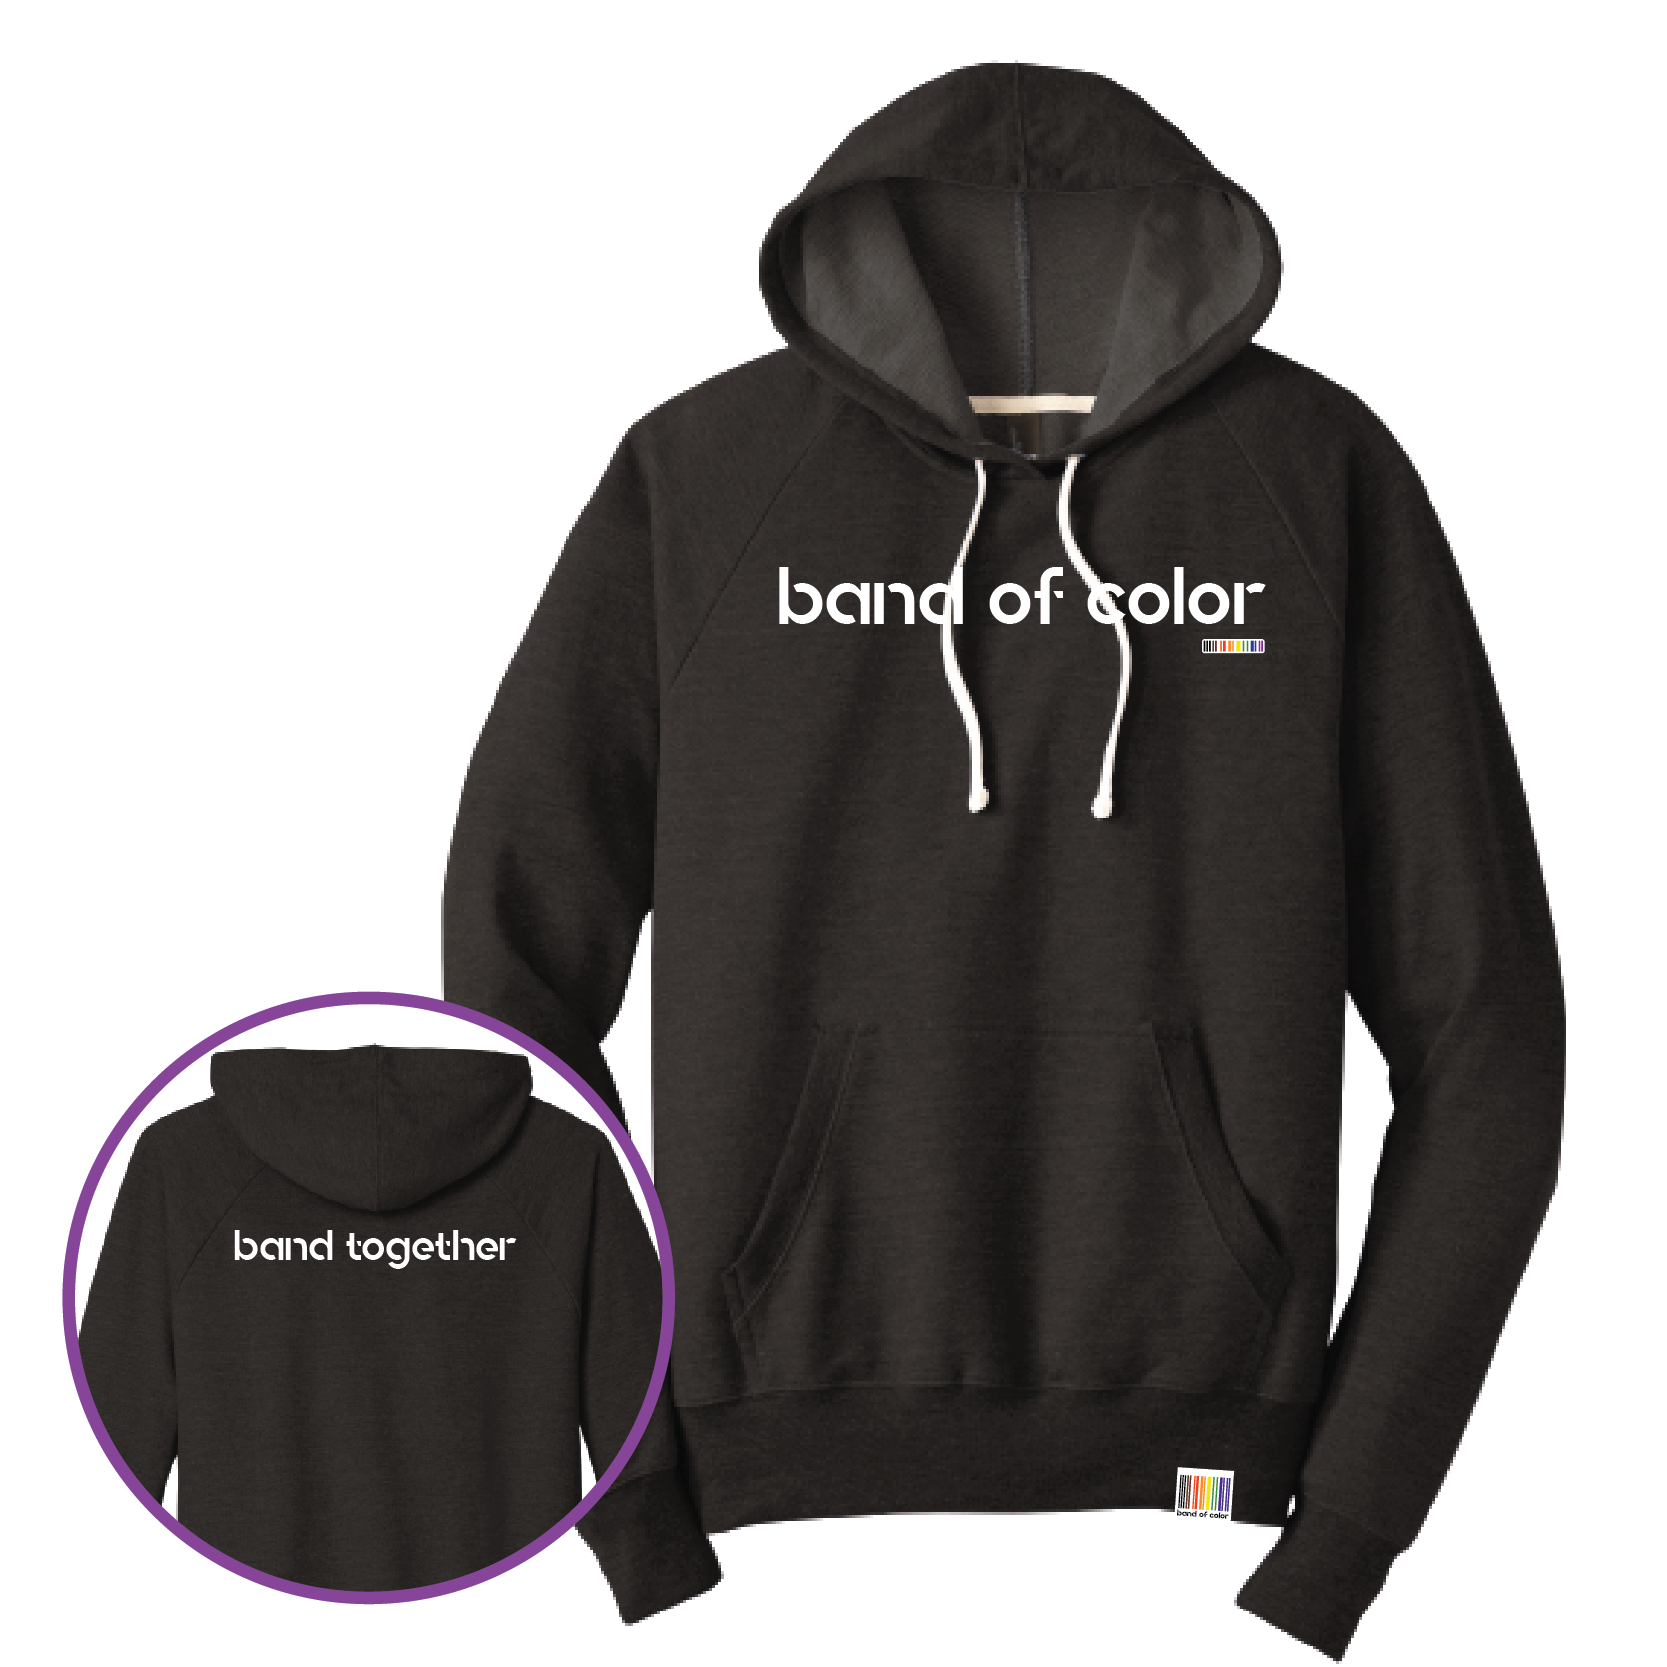 band of color pullover triblend French terry hoodie